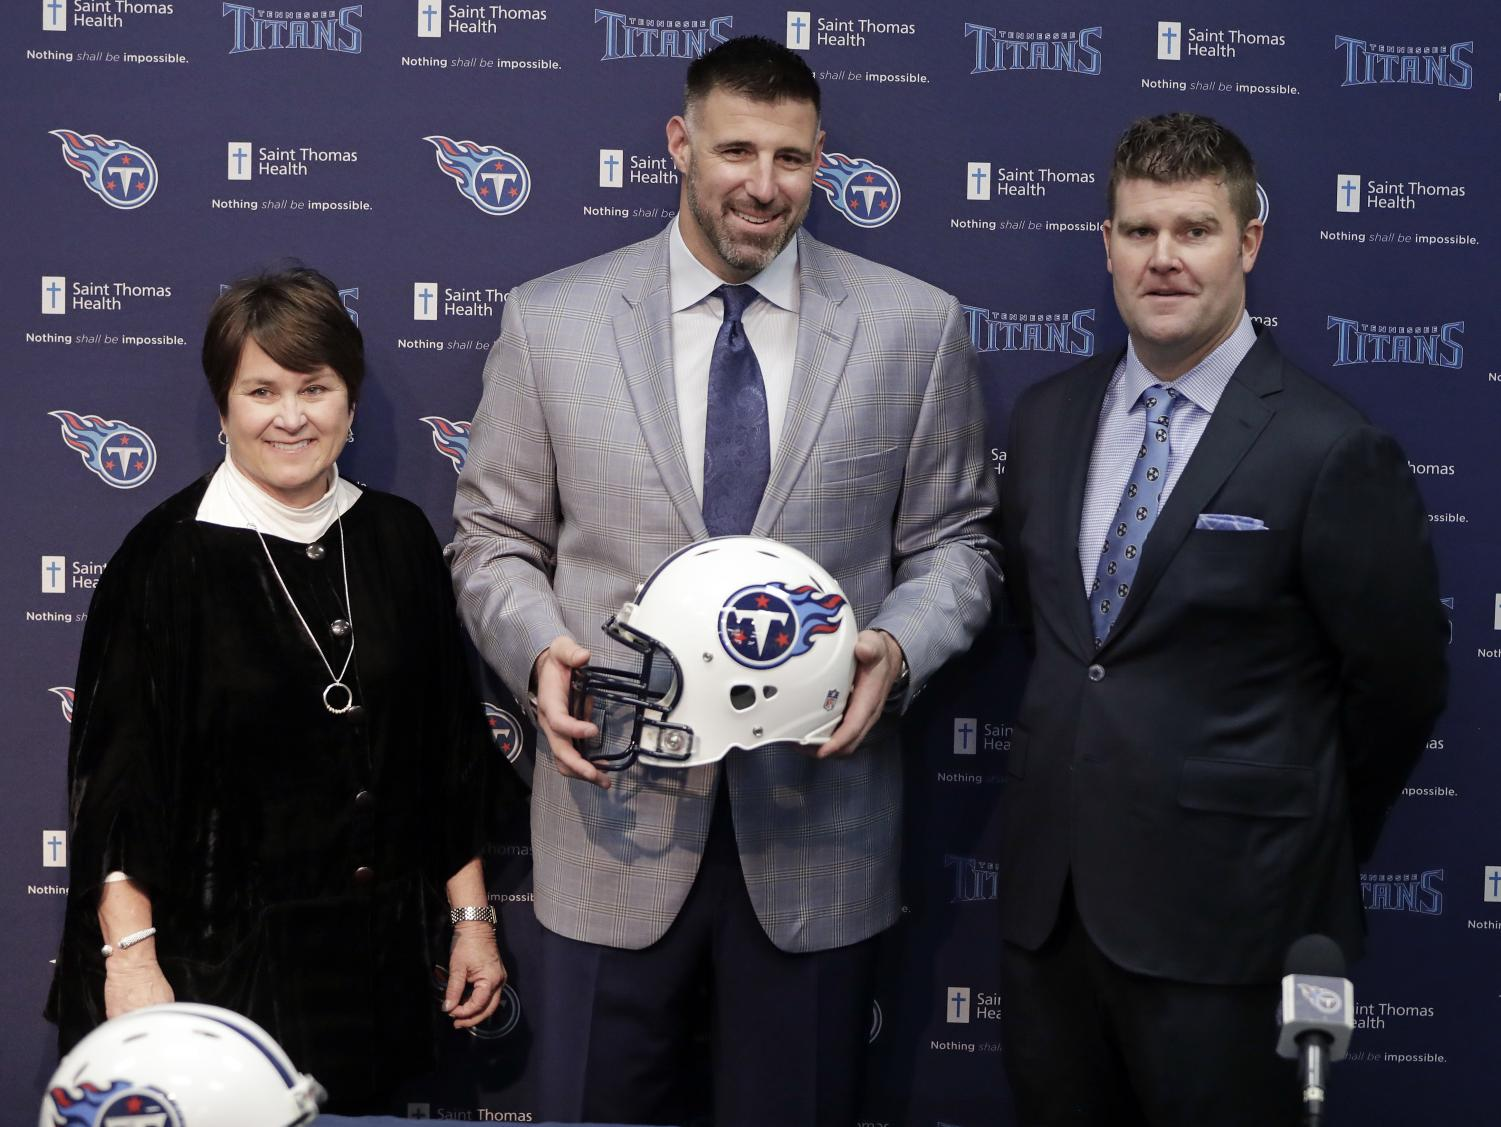 New Tennessee Titans NFL football head coach Mike Vrabel, center, poses with owner Amy Adams Strunk, left, and general manager Jon Robinson, right, during a news conference Monday, Jan. 22, 2018, in Nashville, Tenn. The Titans hired Vrabel, formerly the Houston Texans' defensive coordinator, five days after firing Mike Mularkey. (AP Photo/Mark Humphrey)